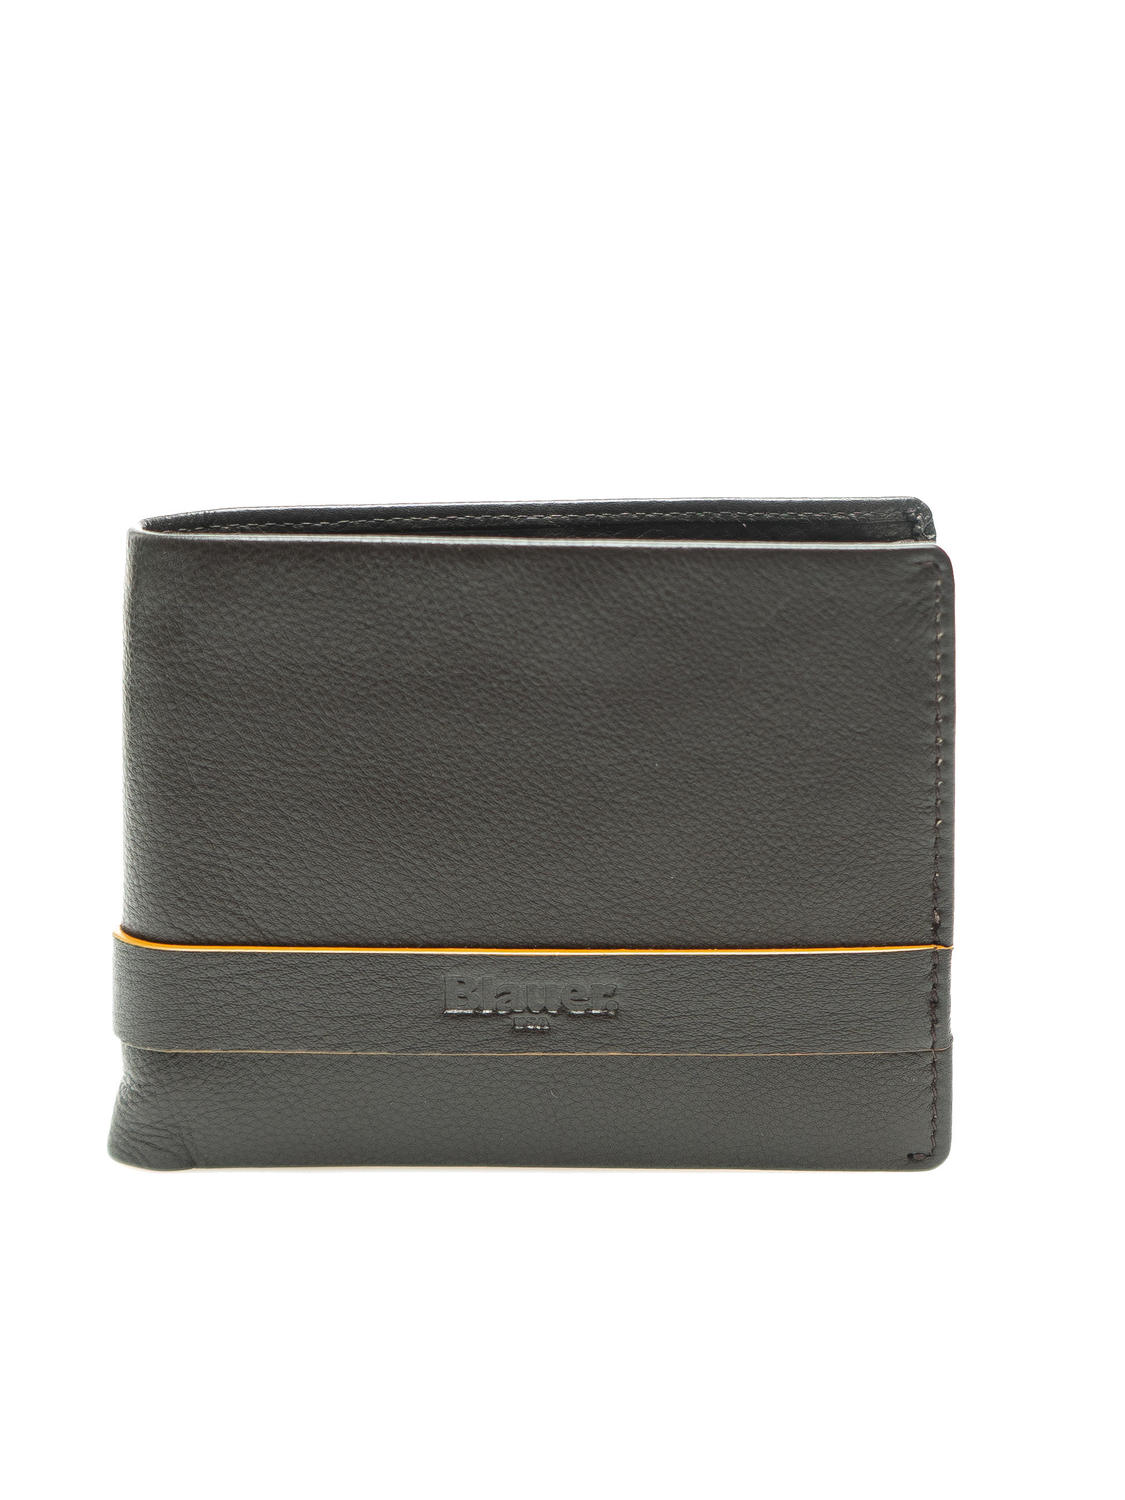 Men's Wallets -  CRUNCHY Wallet with coin purse, in leather